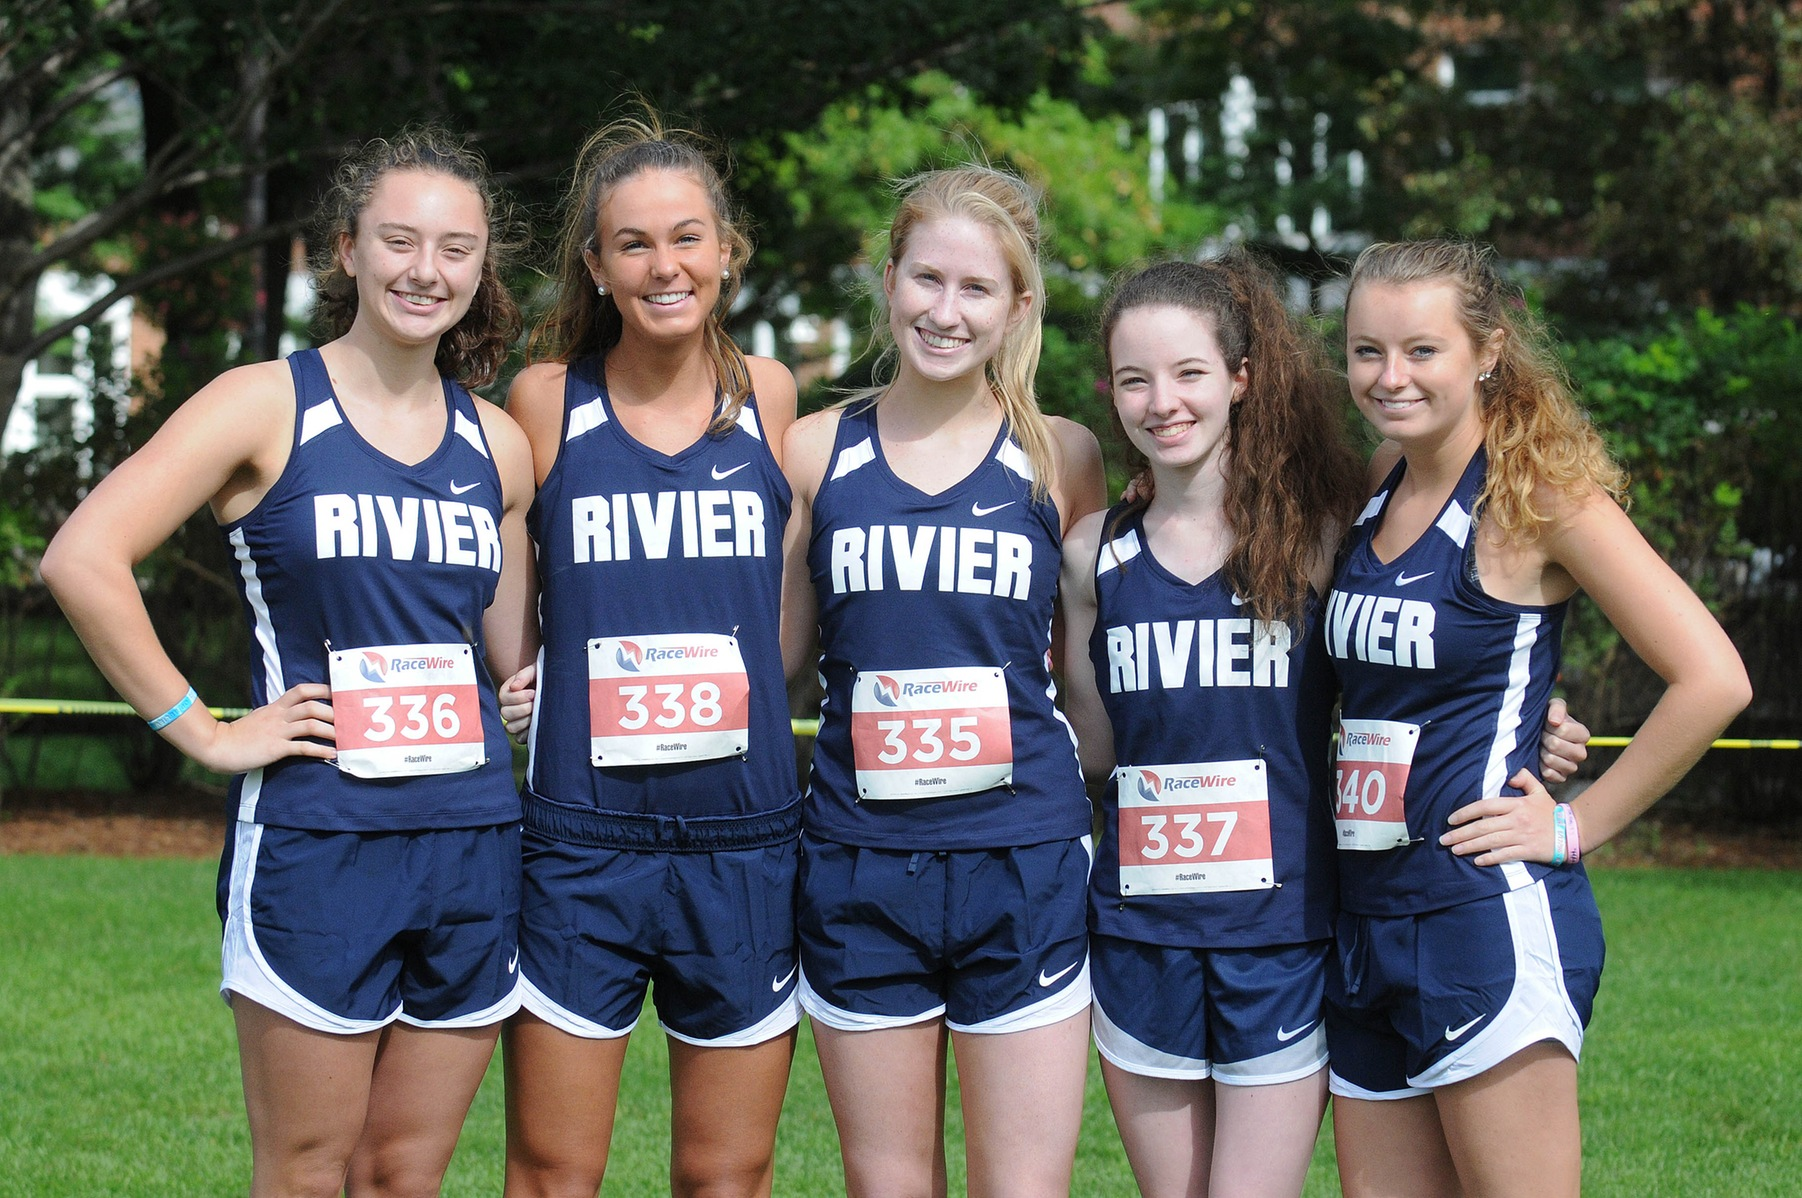 Women's Cross Country: Raiders finish 2nd overall as a team at Travis J. Fuller Invitational